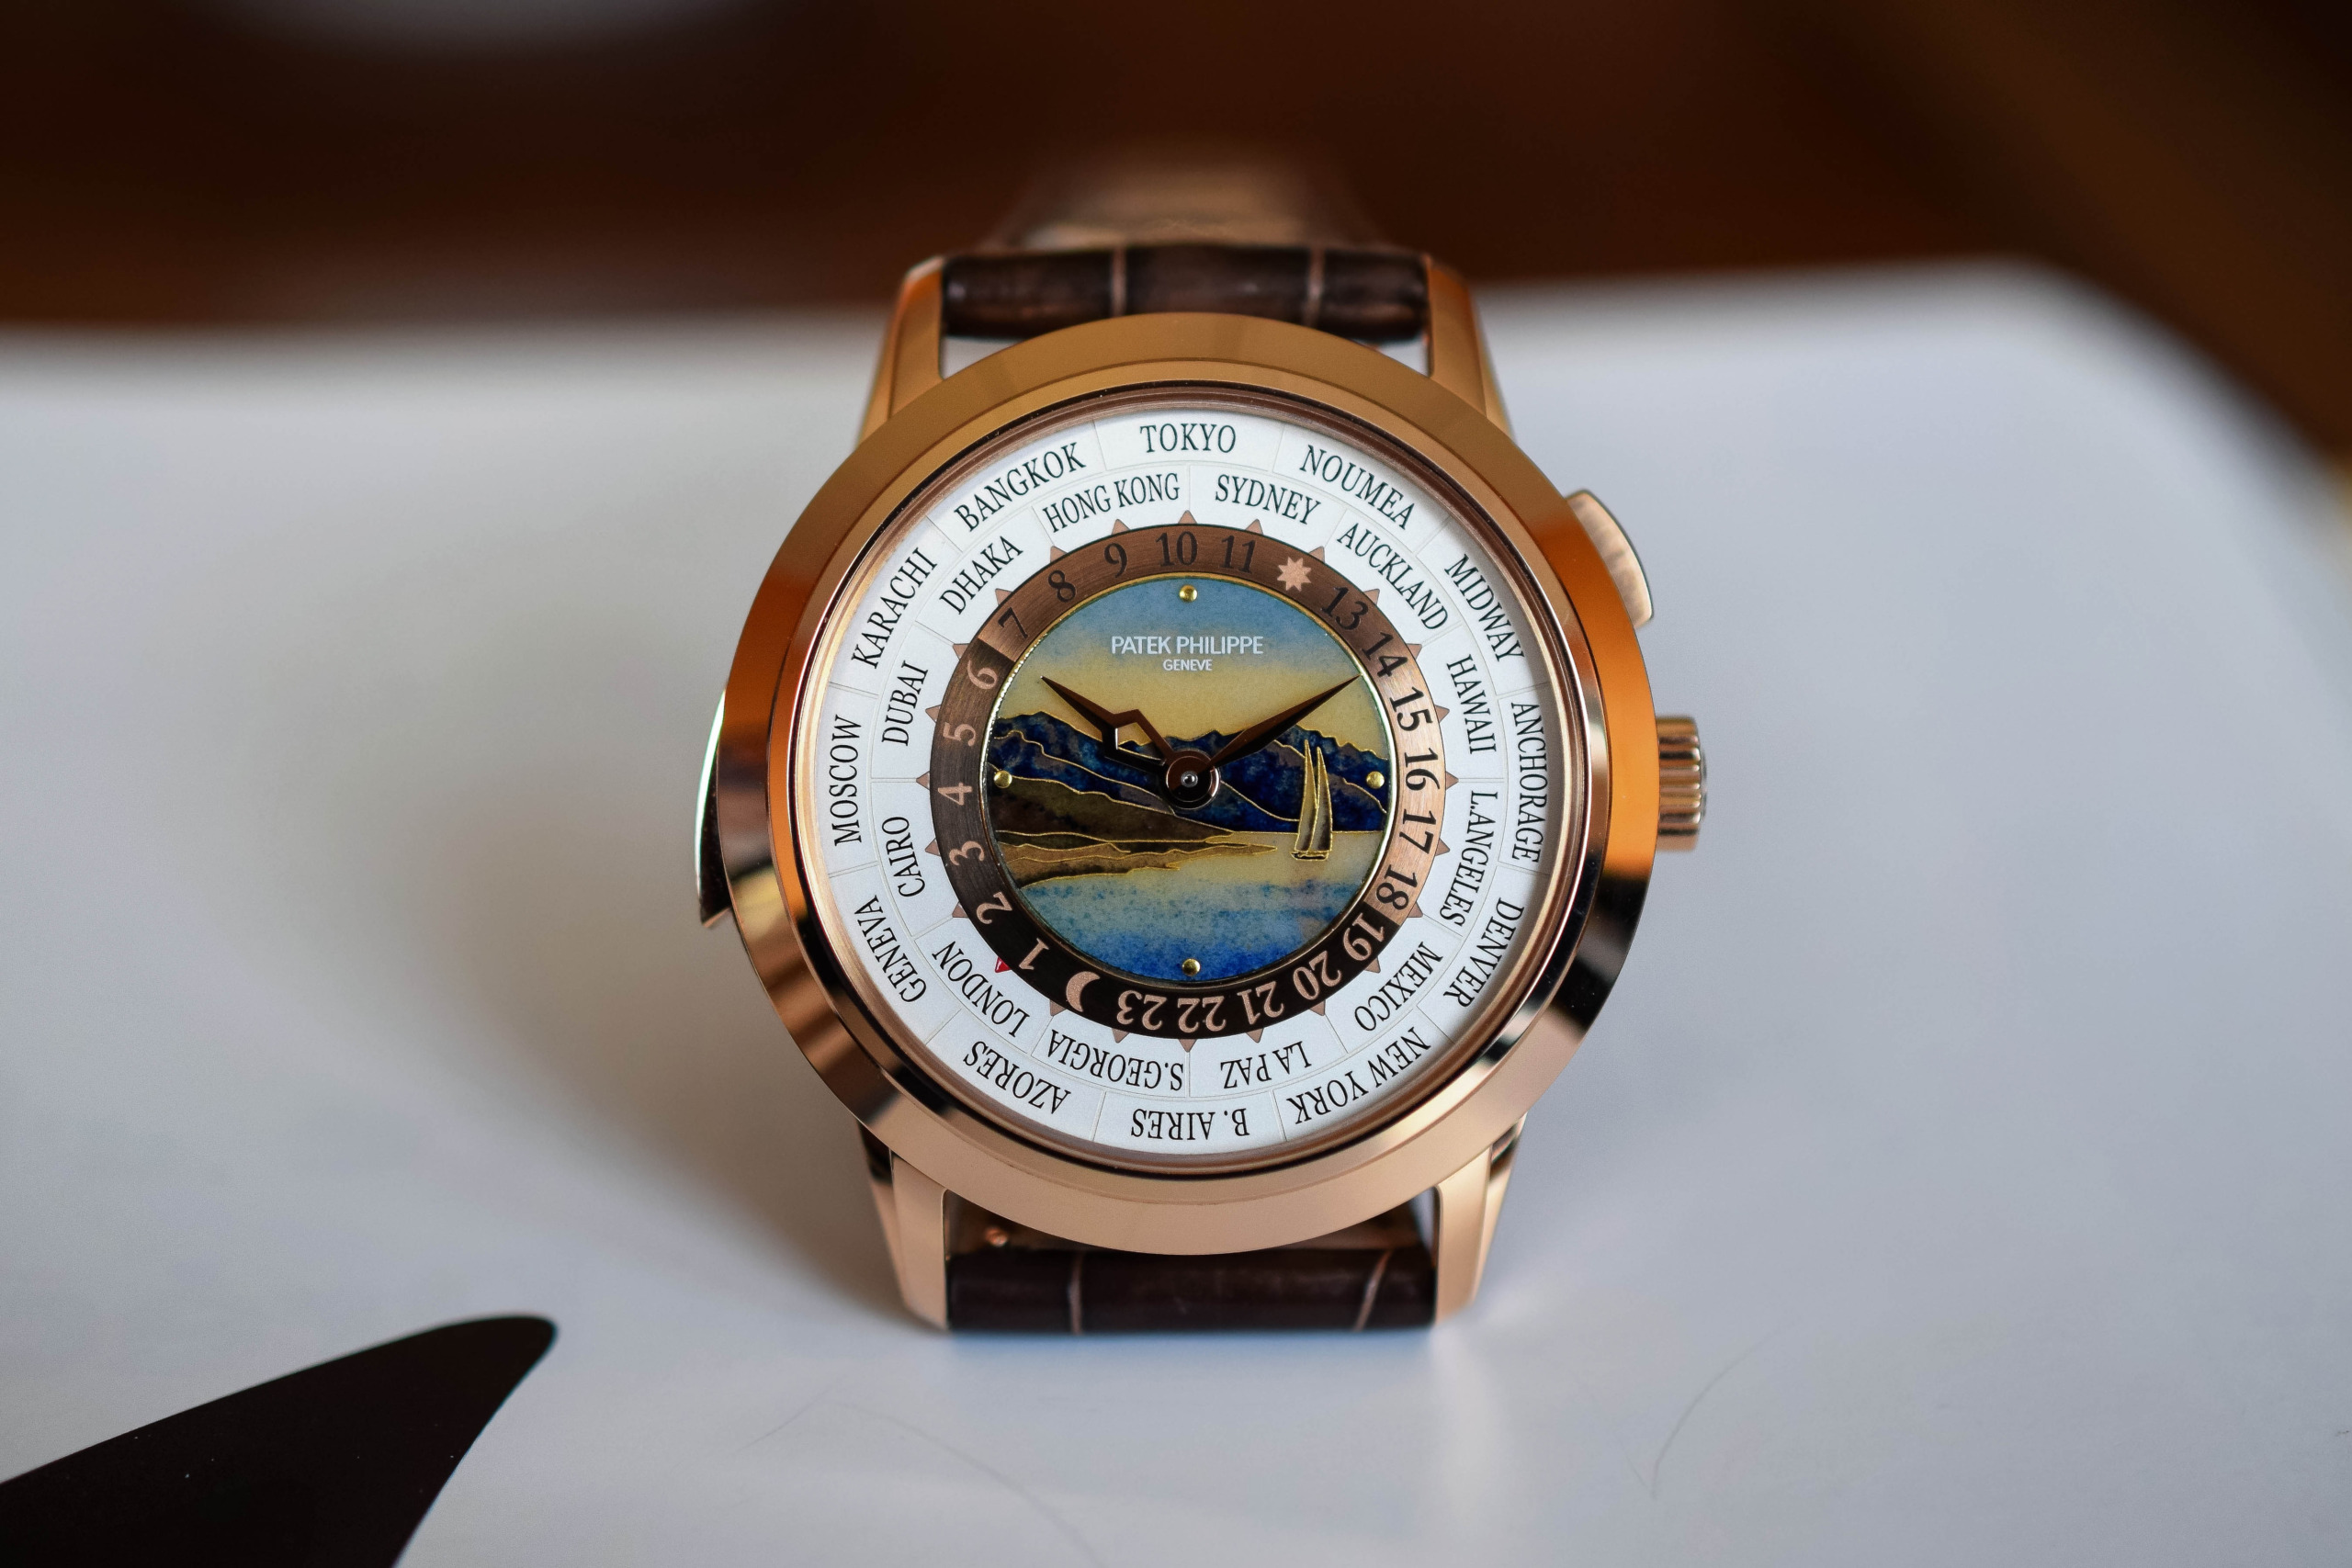 Patek Philippe Rare Handcrafts 2020 Exhibition in Geneva